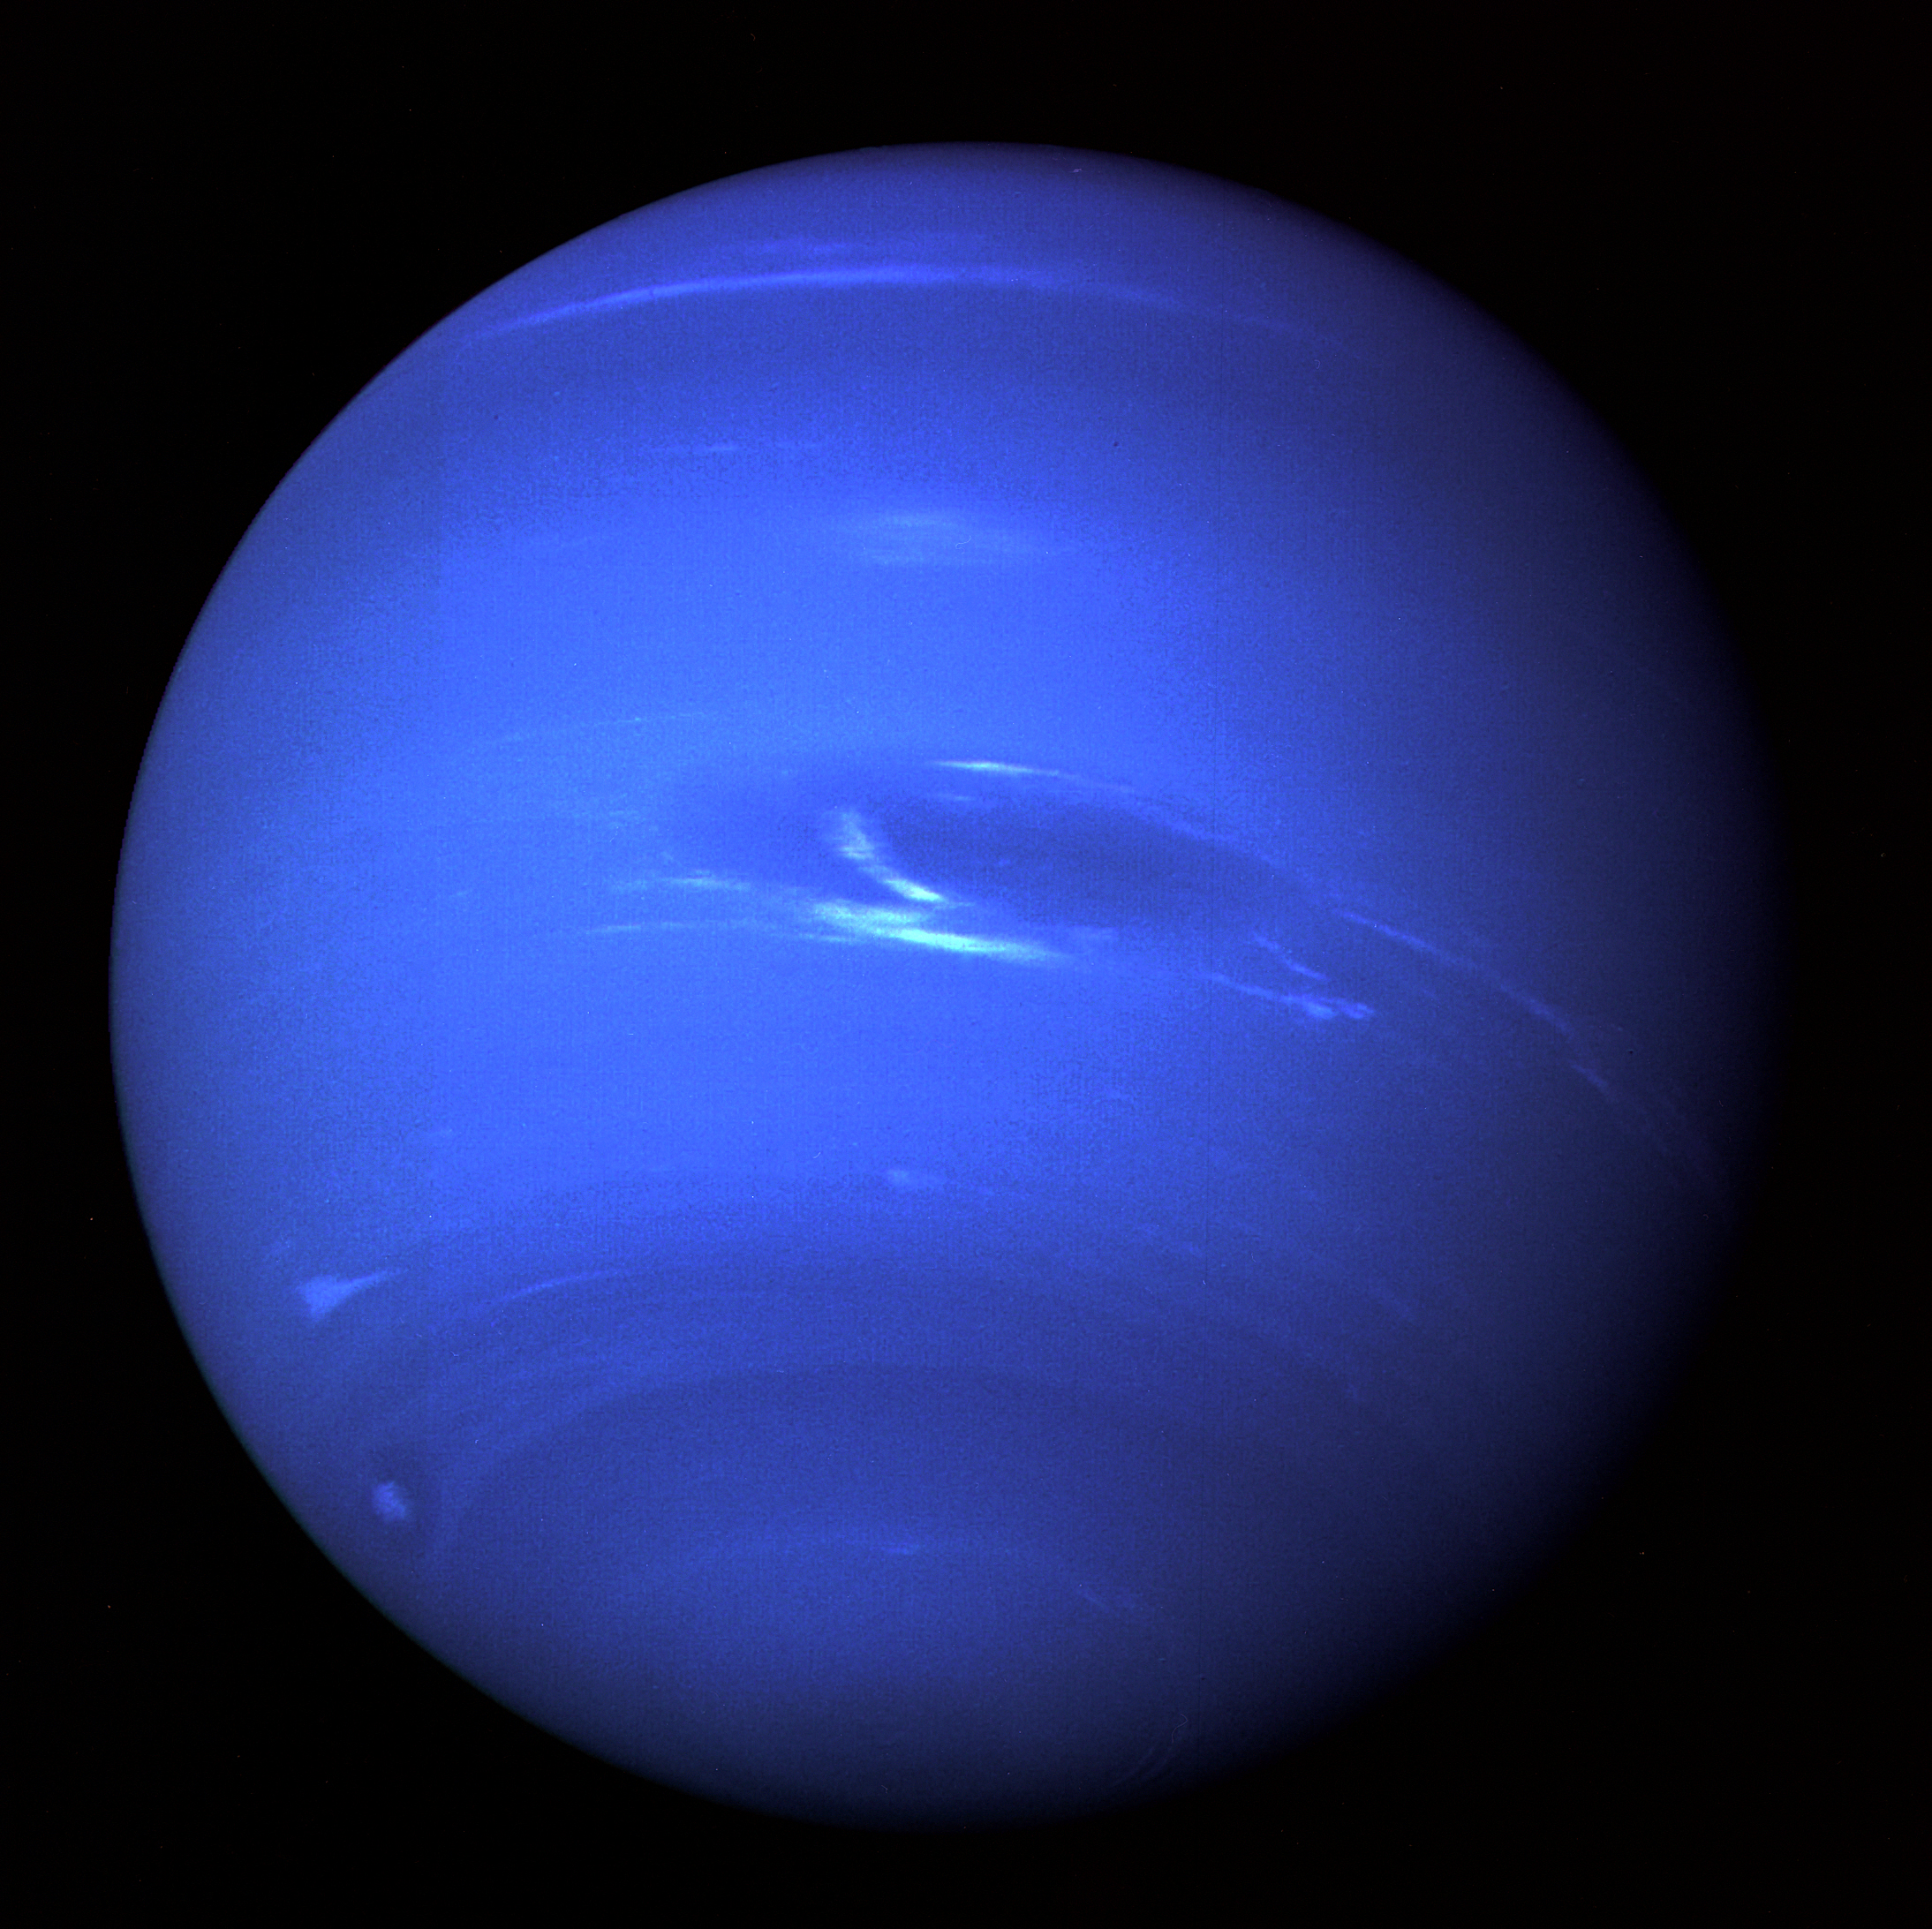 25 Years Ago, Voyager 2 Captures Images of Neptune